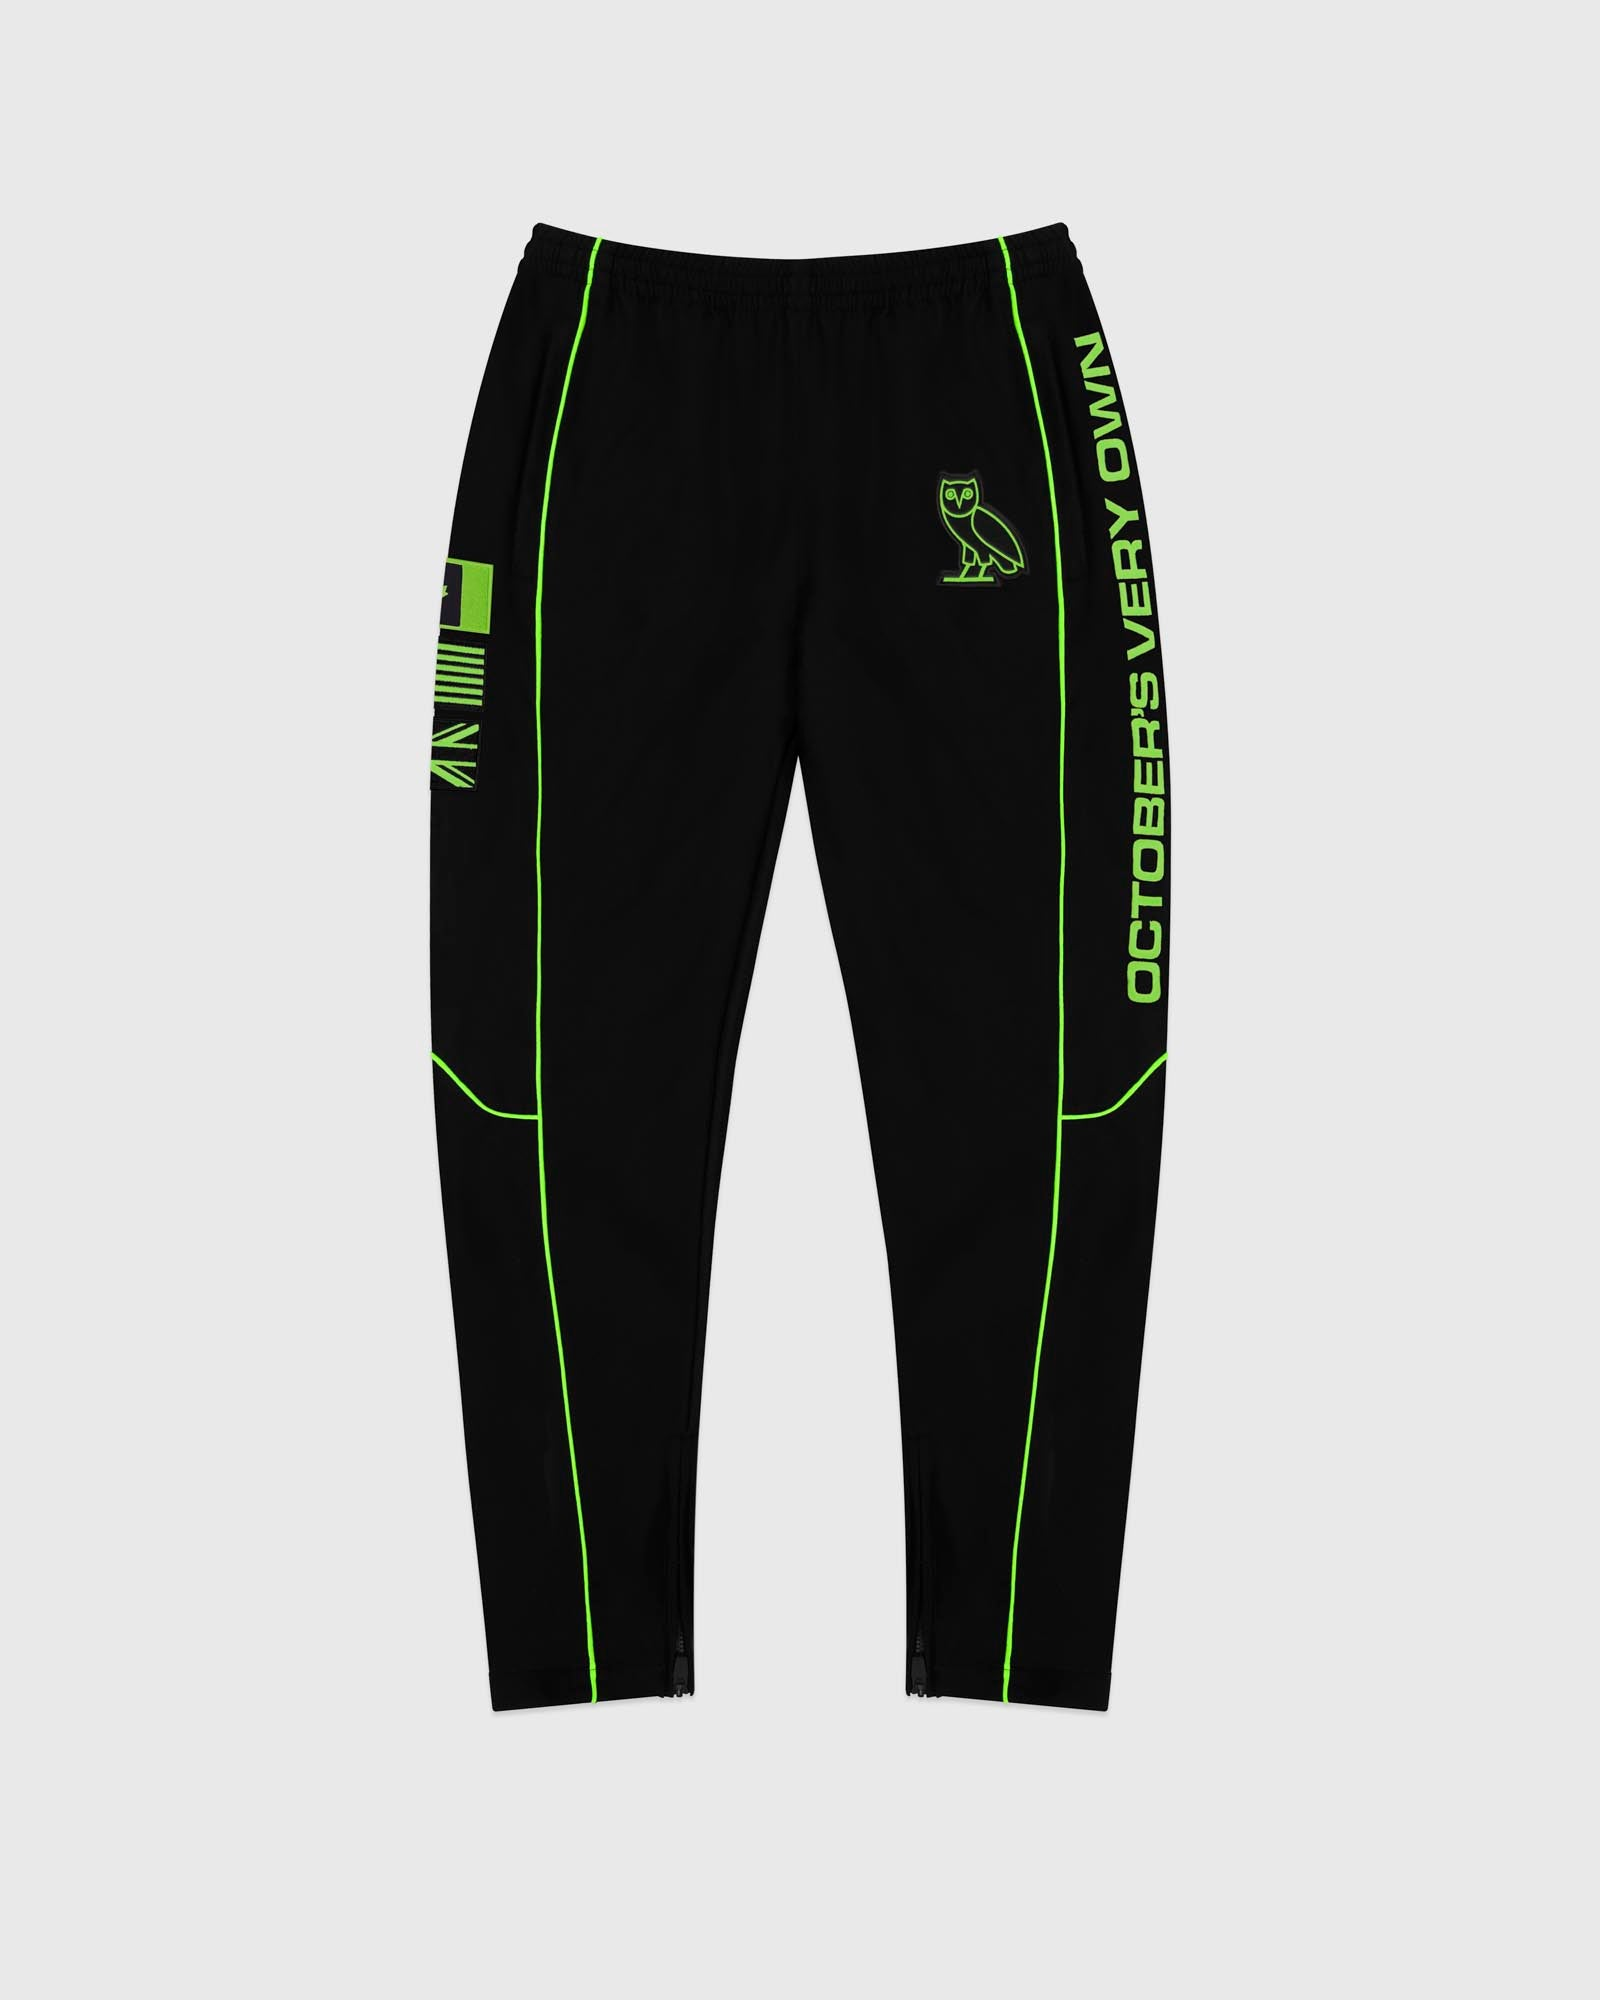 NYLON TEAM RACE PANT - BLACK IMAGE #1